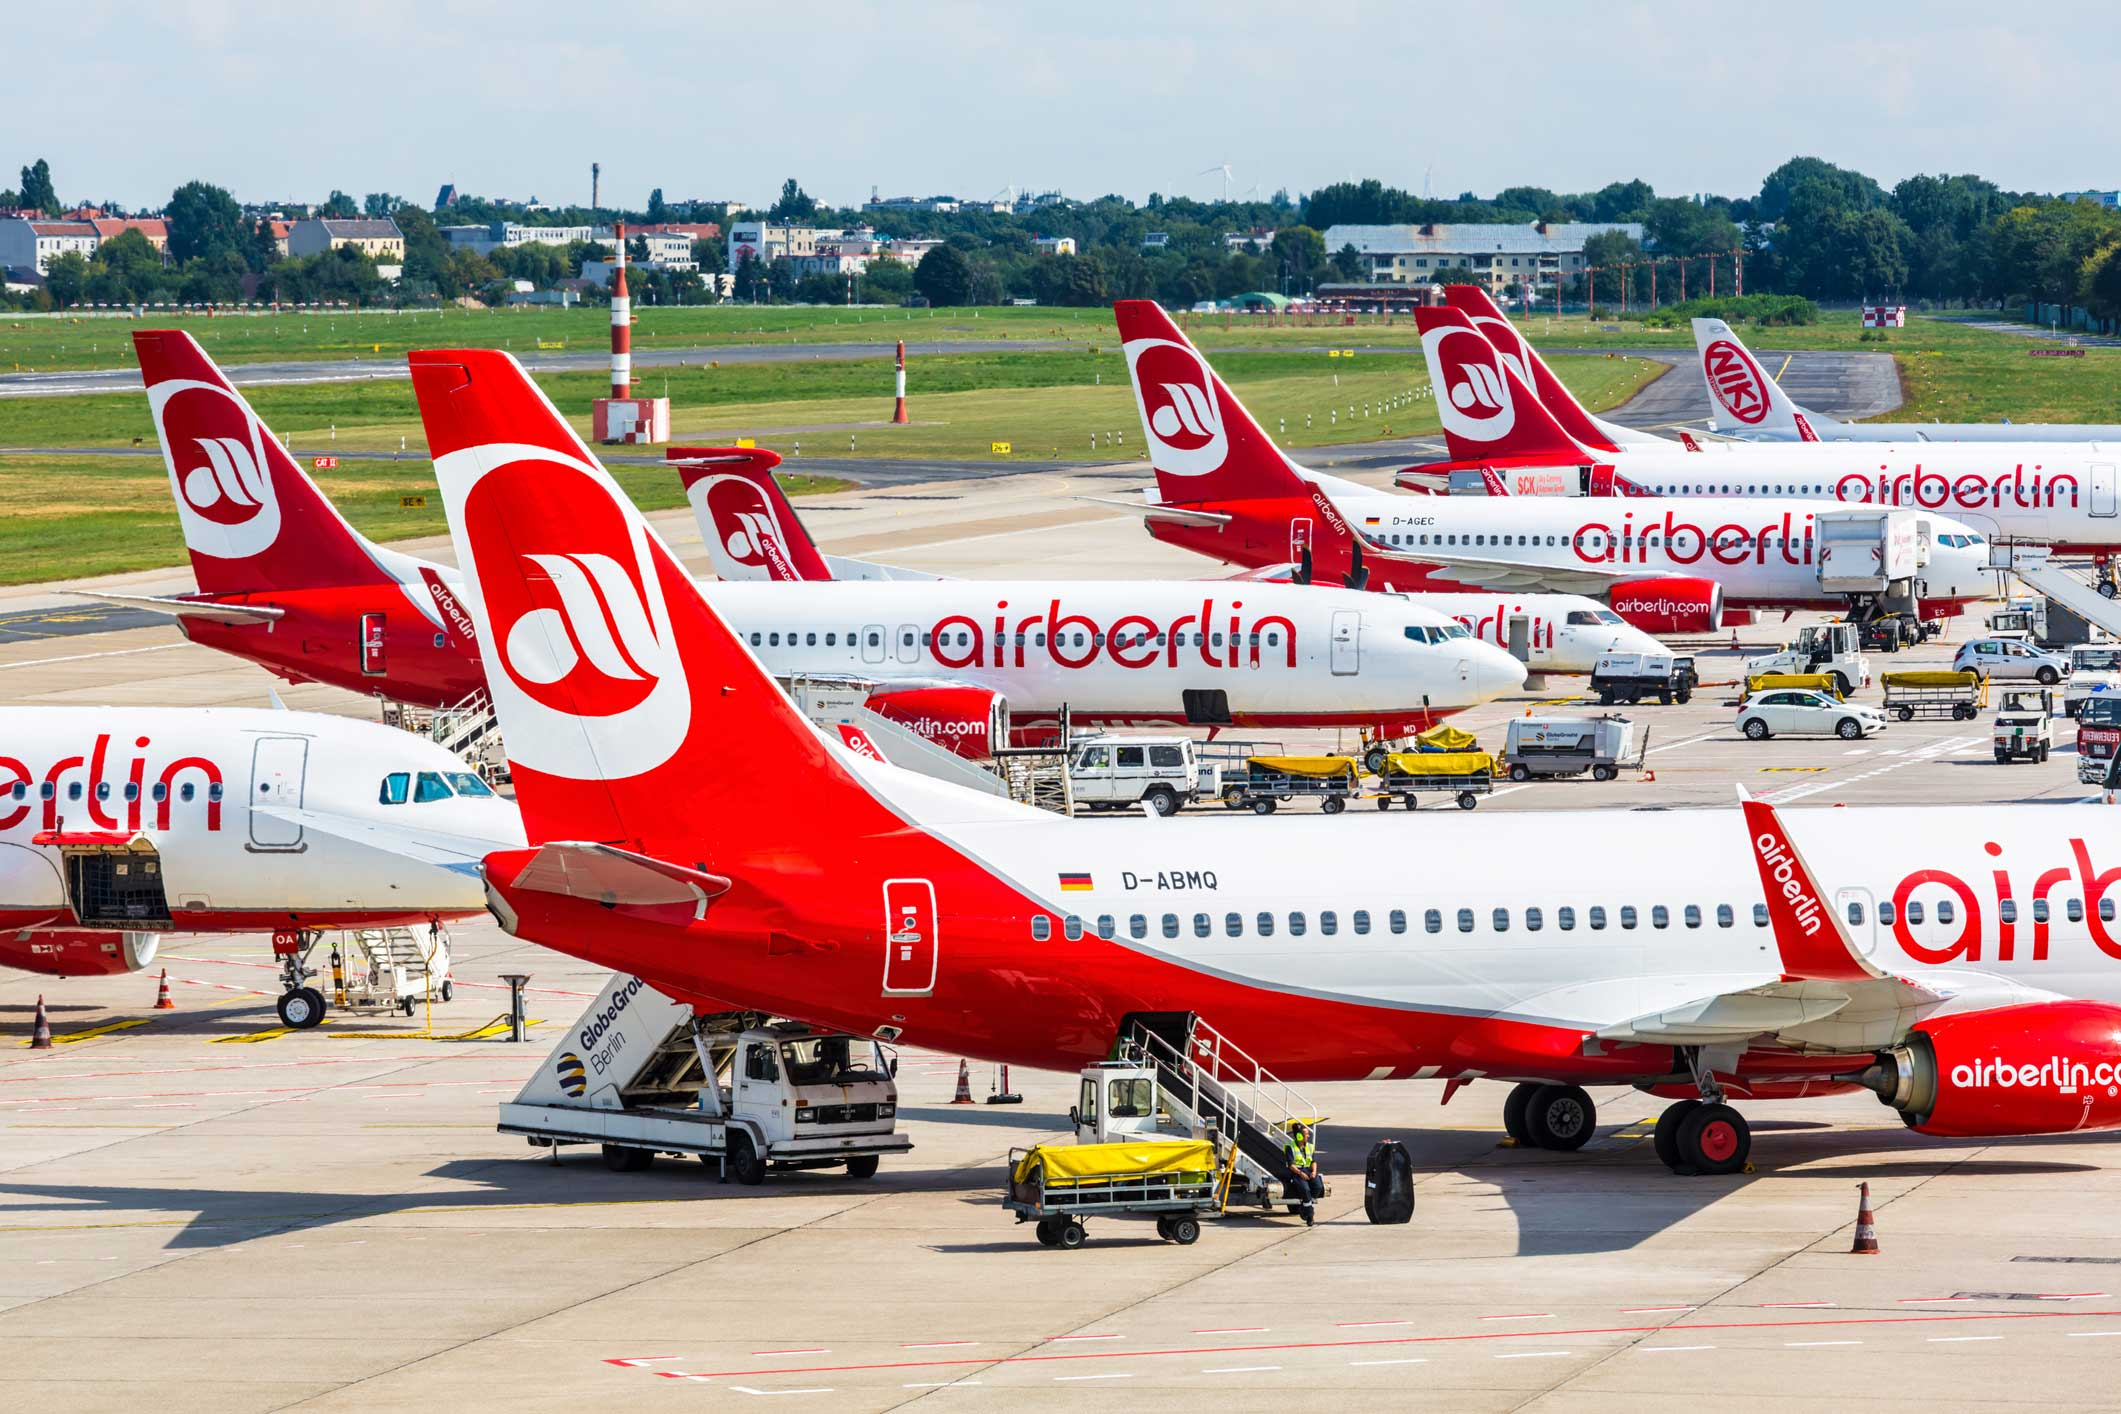 Air Berlin Planes on the Ground